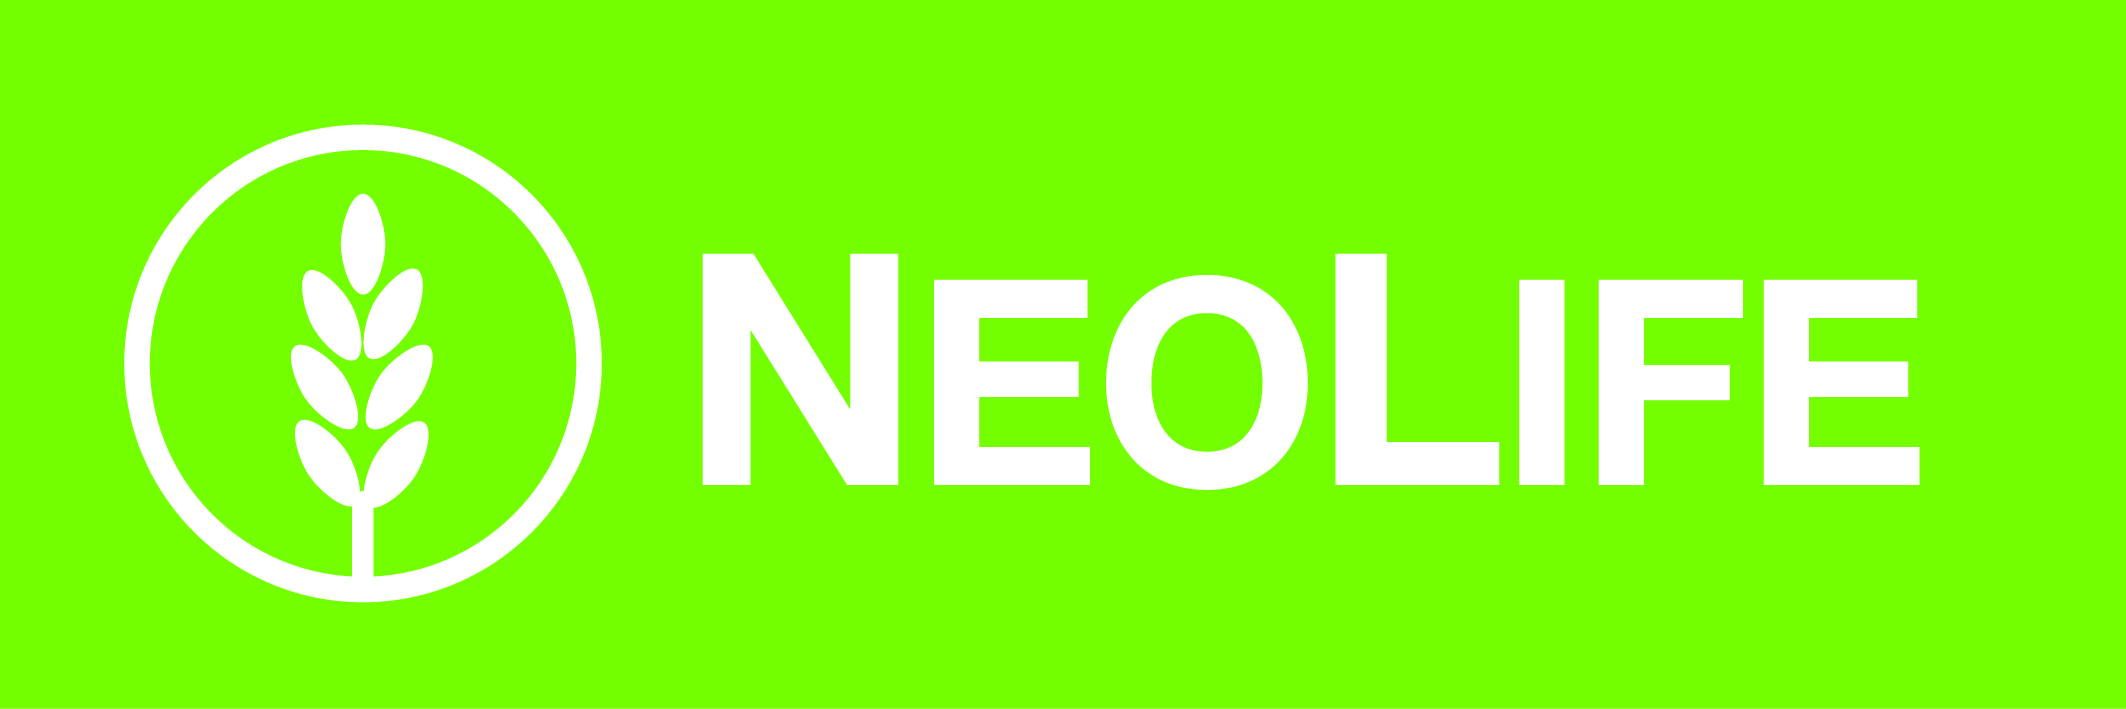 neolife-logo-white-logo-green-background